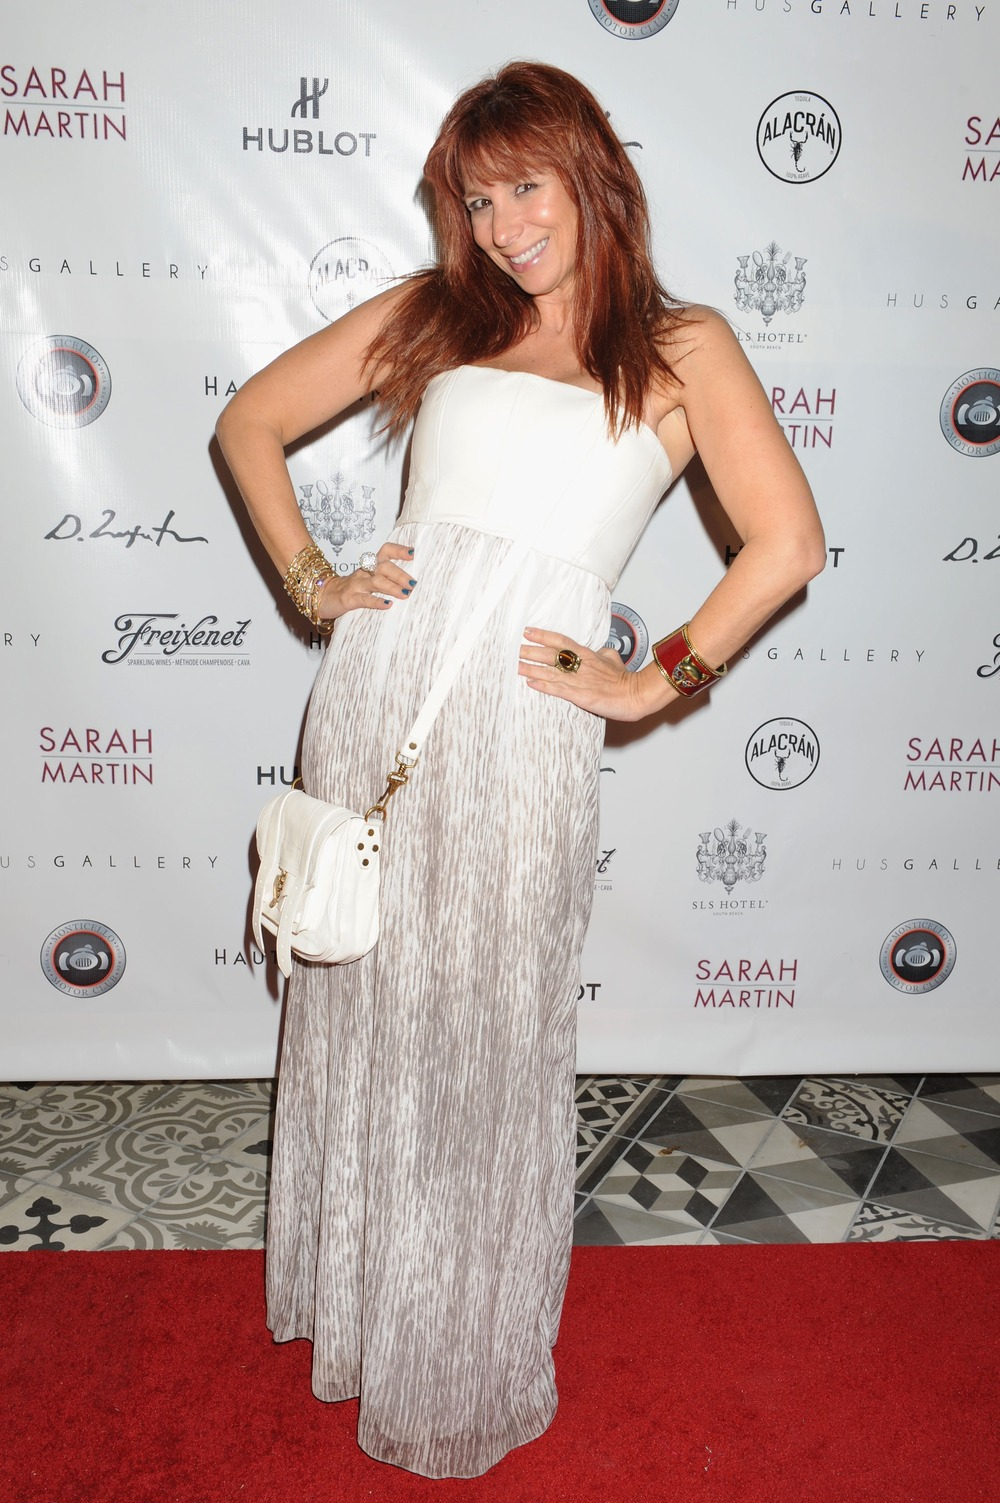 Jill Zarin Turns 50! How'd She Celebrate? — Exclusive Details